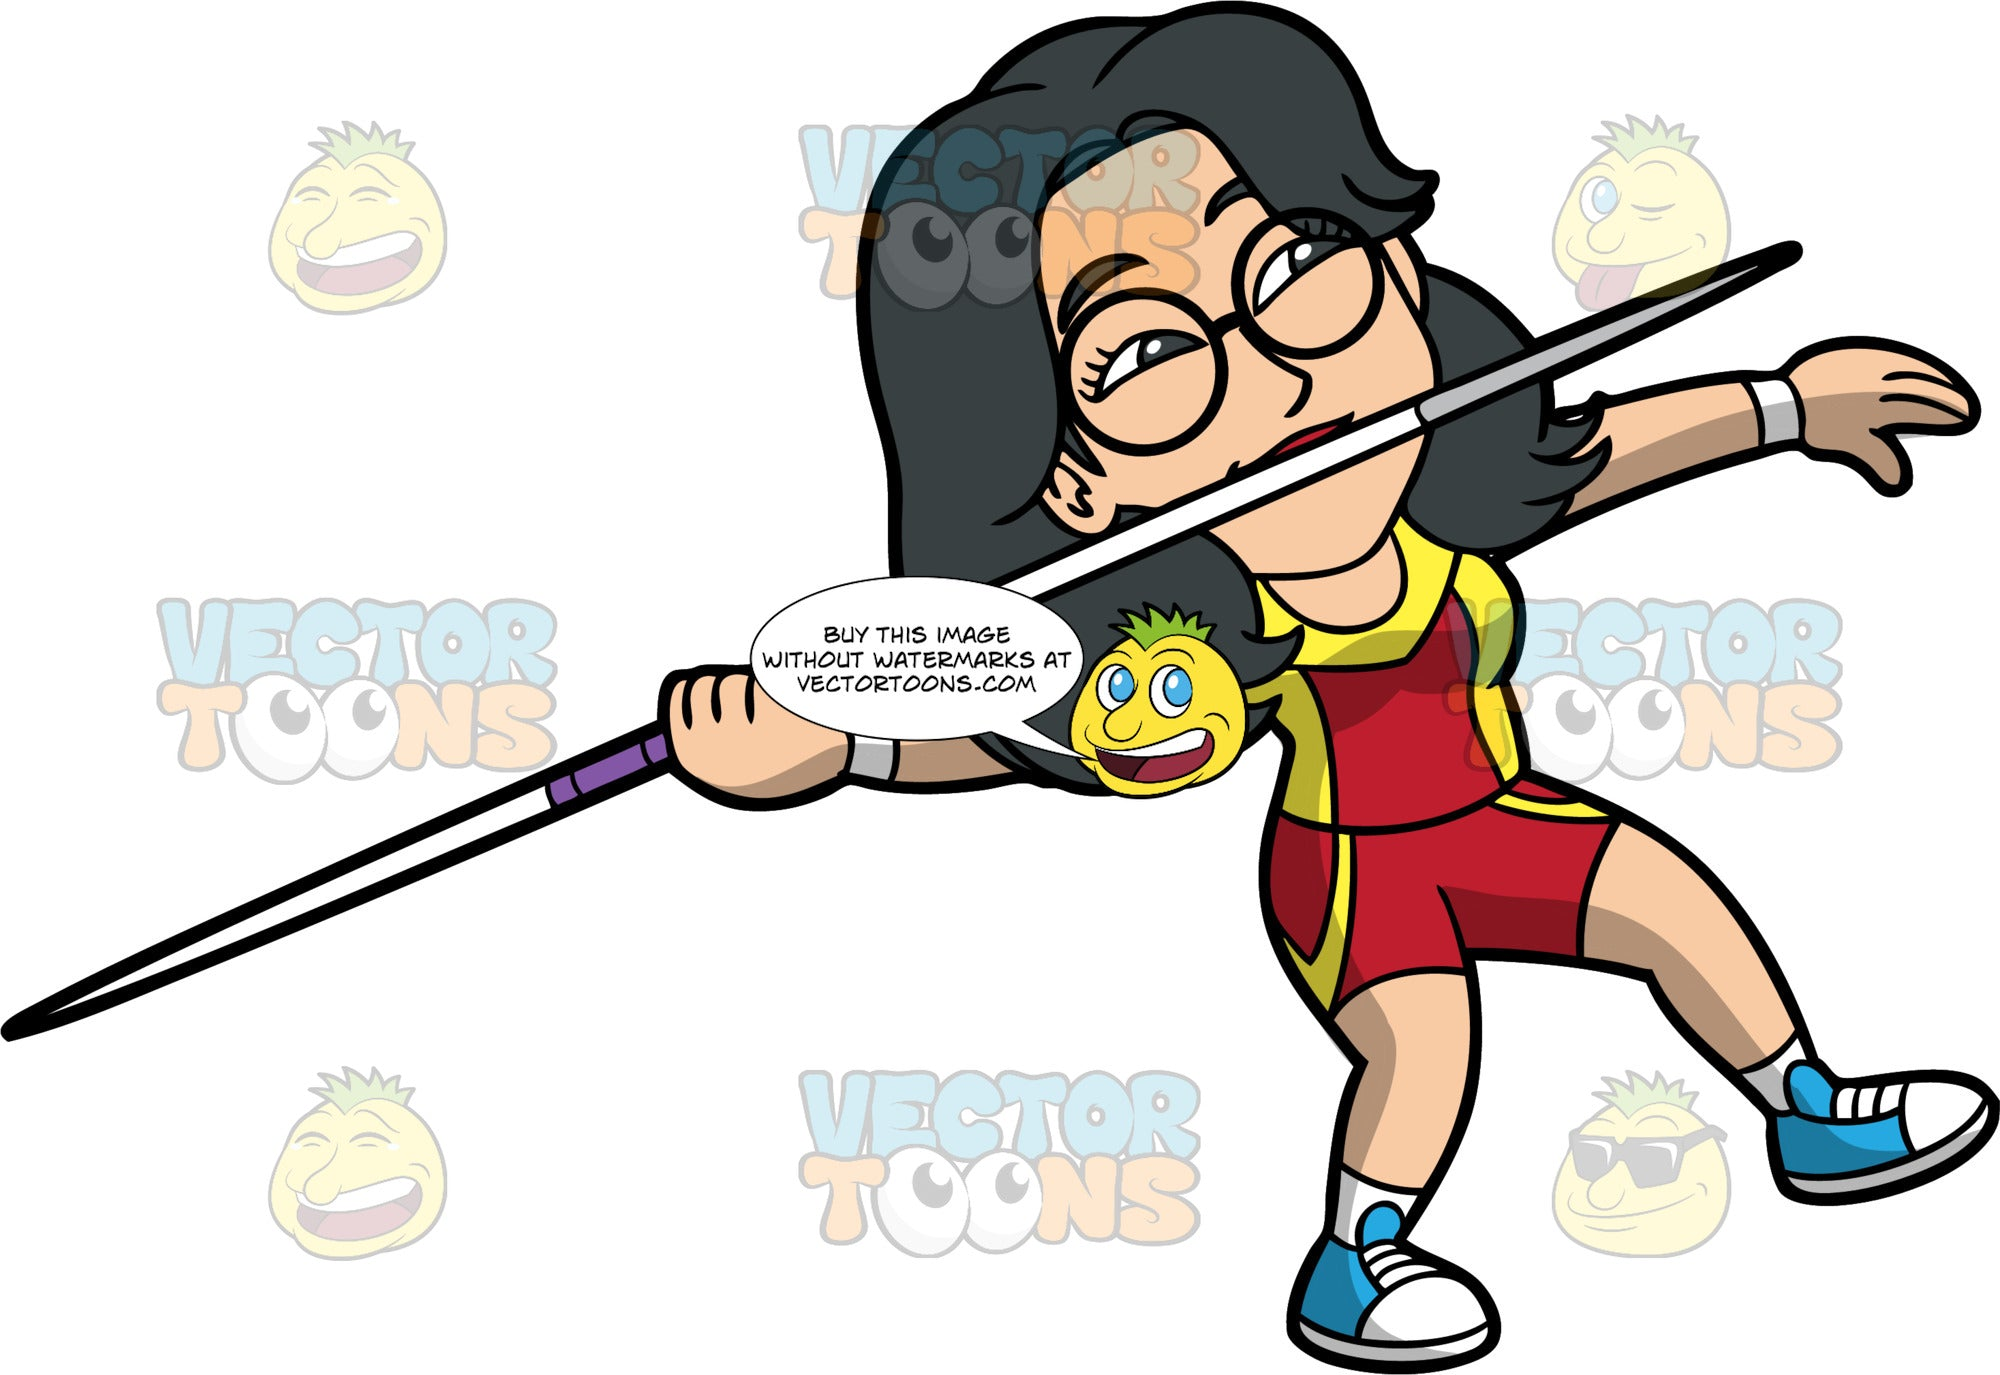 Lynn Preparing To Throw A Javelin. An Asian woman wearing red with yellow shorts, a red with yellow shirt, blue running shoes, and round eyeglasses holding a javelin and getting ready to throw it